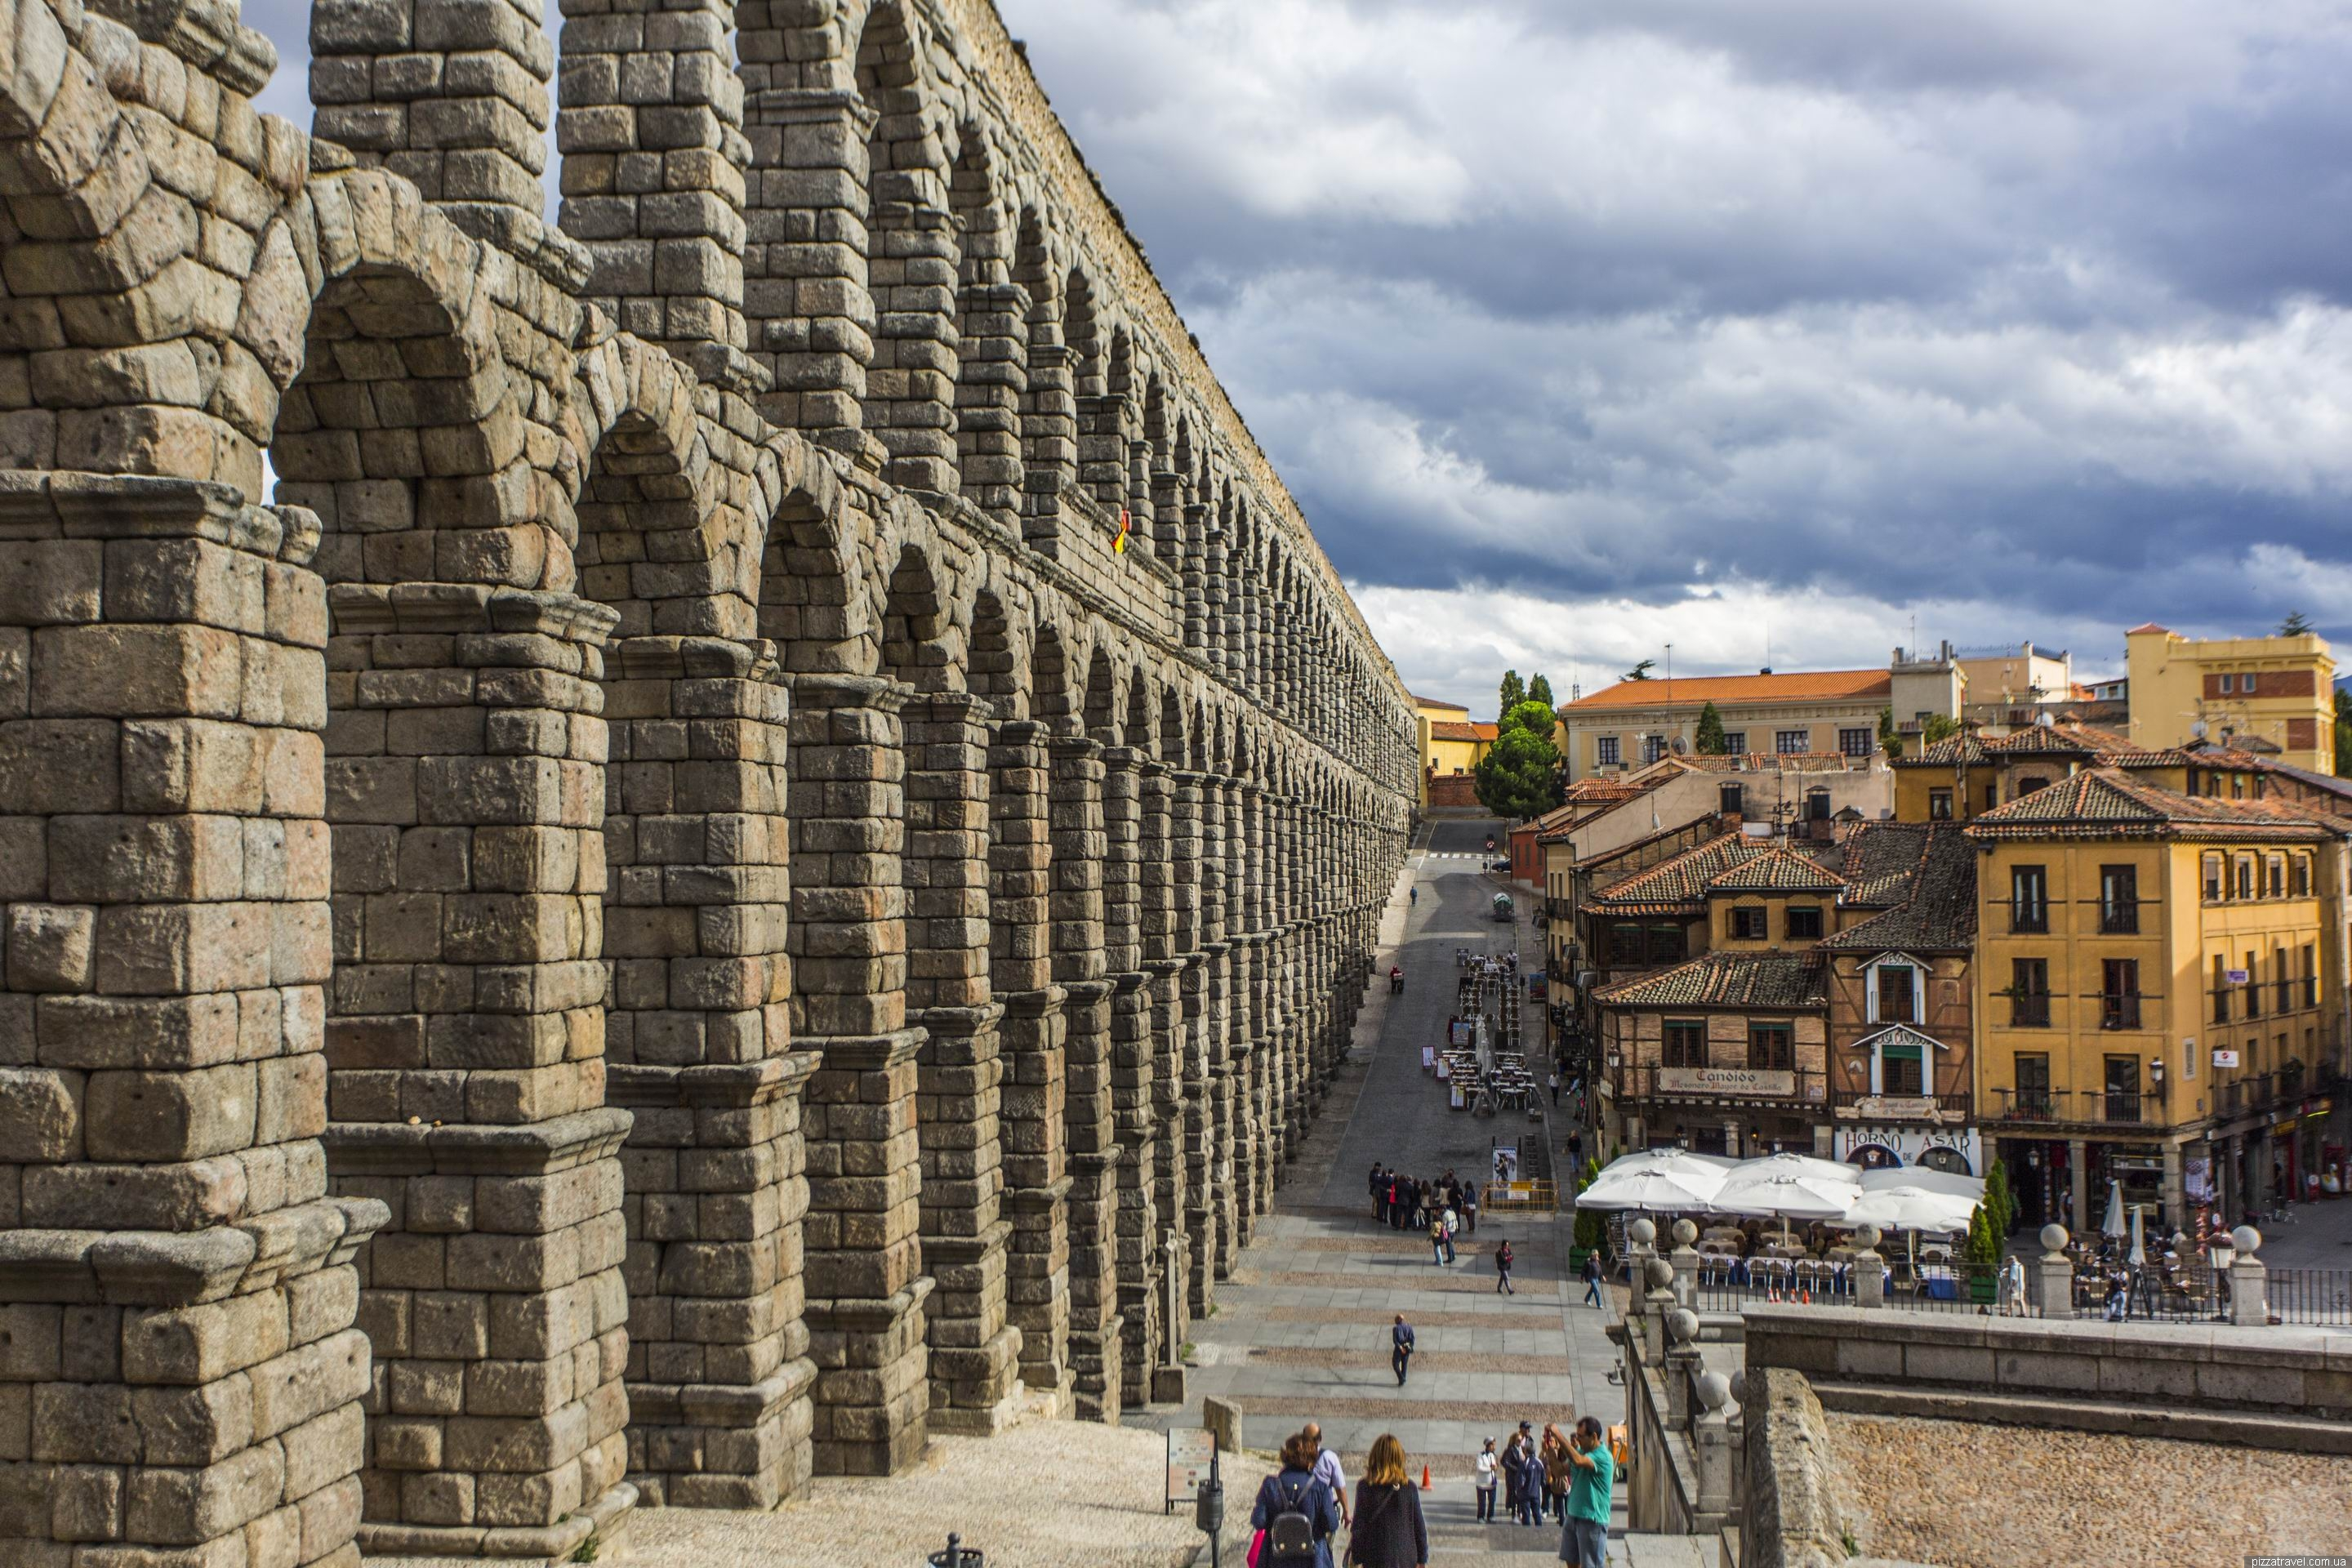 Segovia - Spain - Blog about interesting places